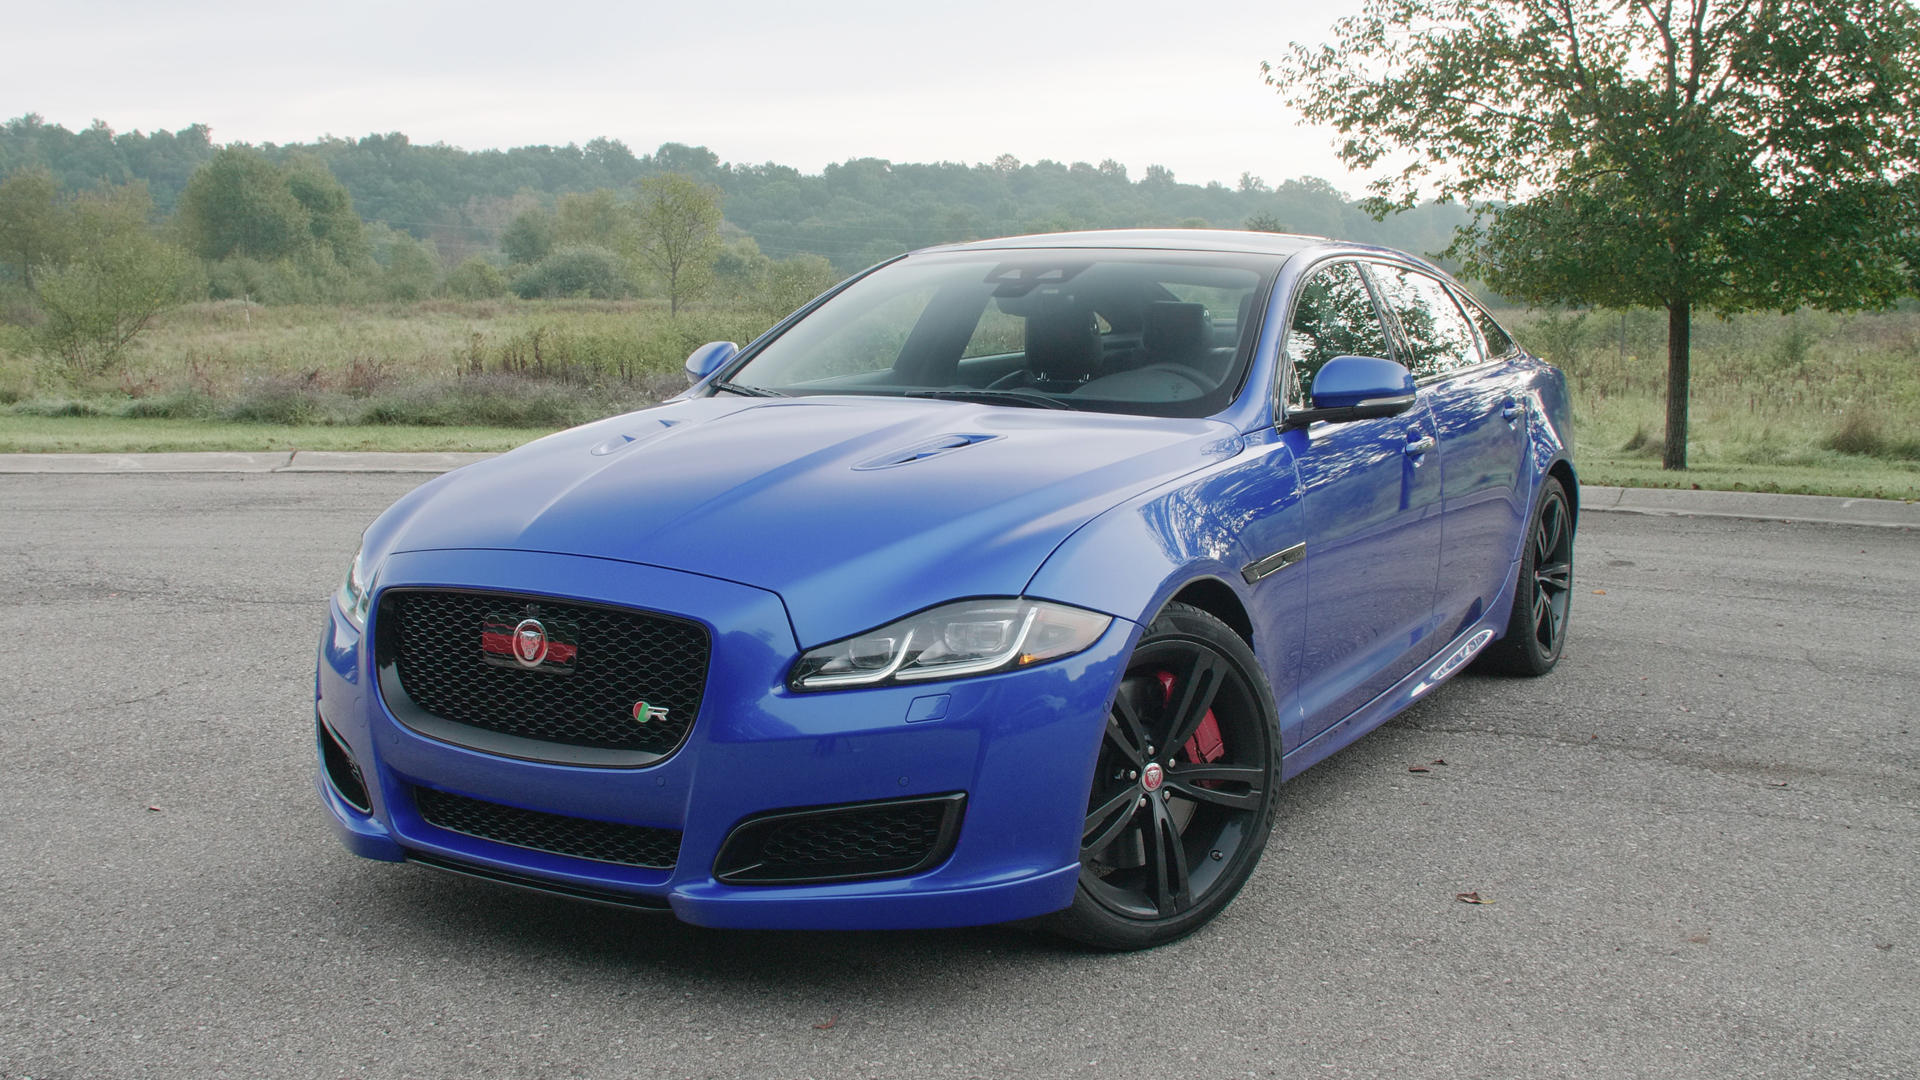 Video: 5 things you need to know about the 2019 Jaguar XJR575